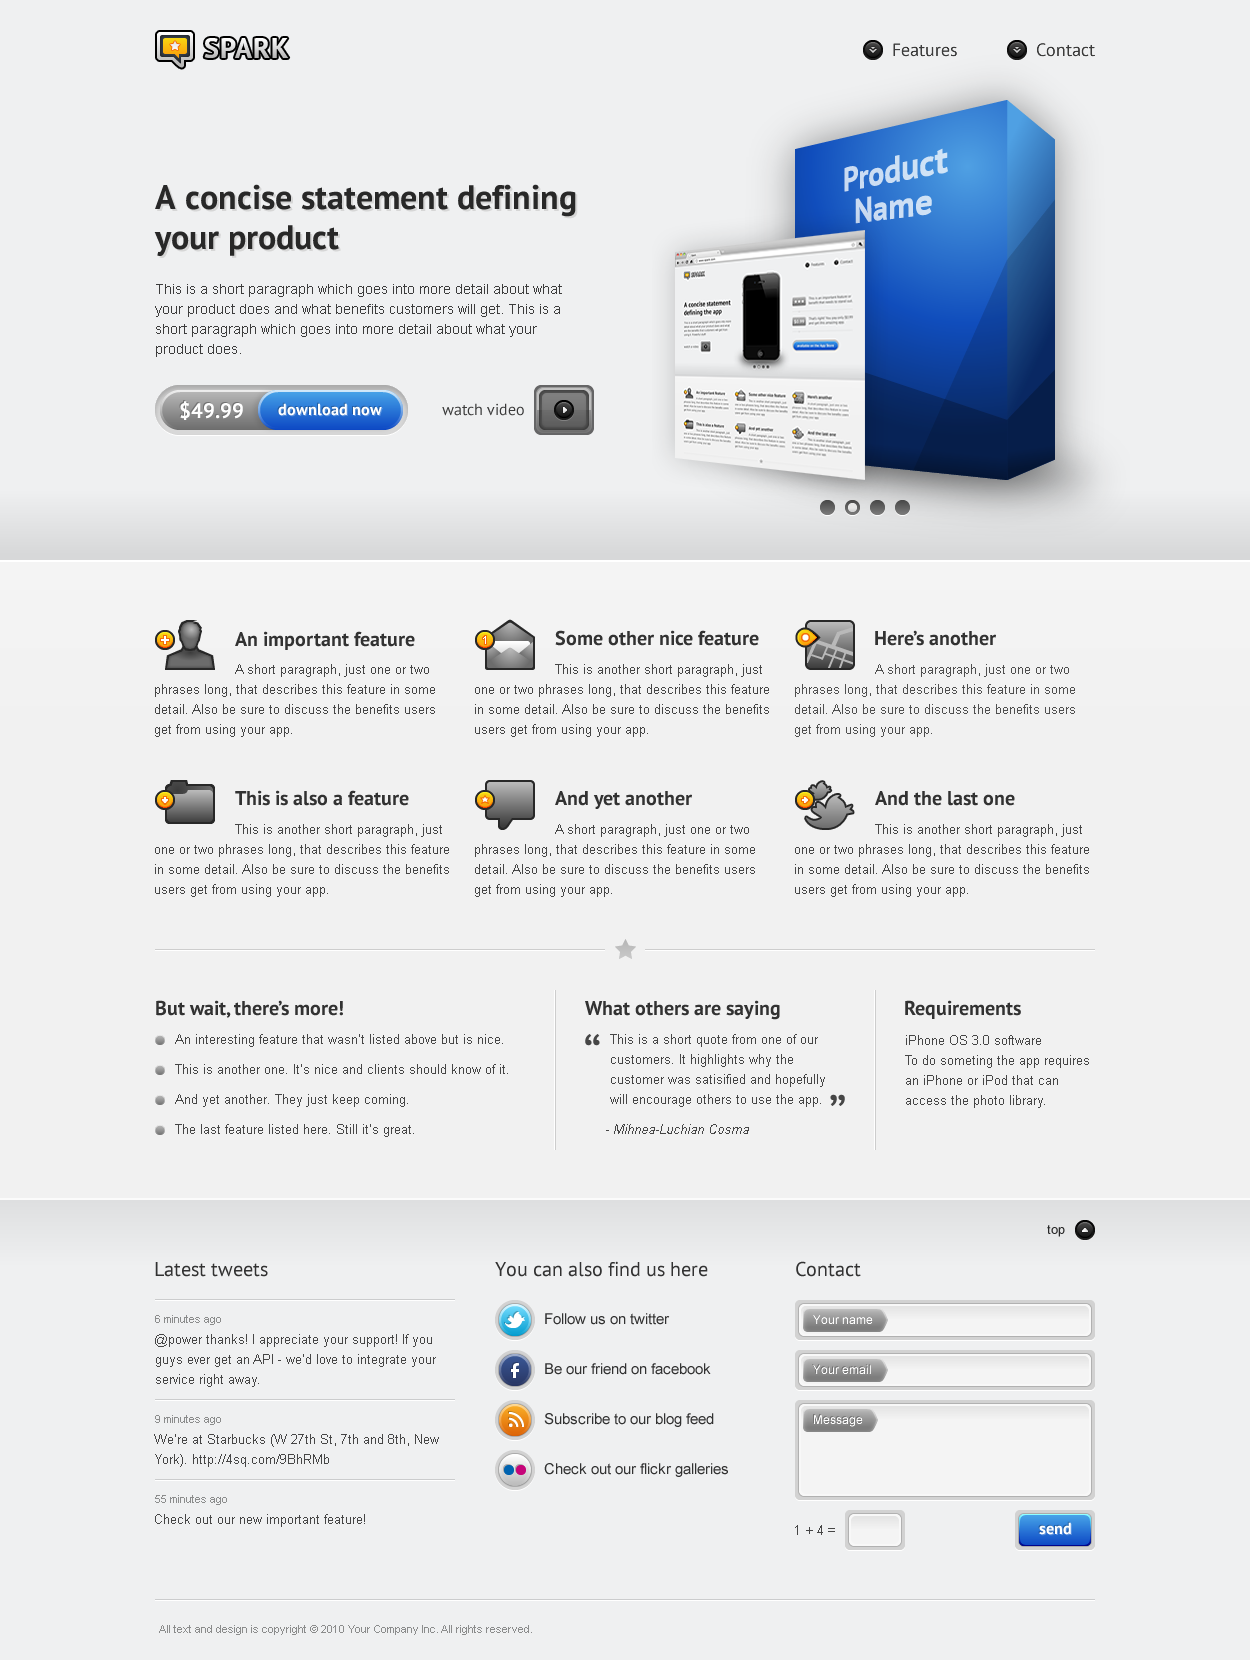 Spark - The Perfect Landing Page